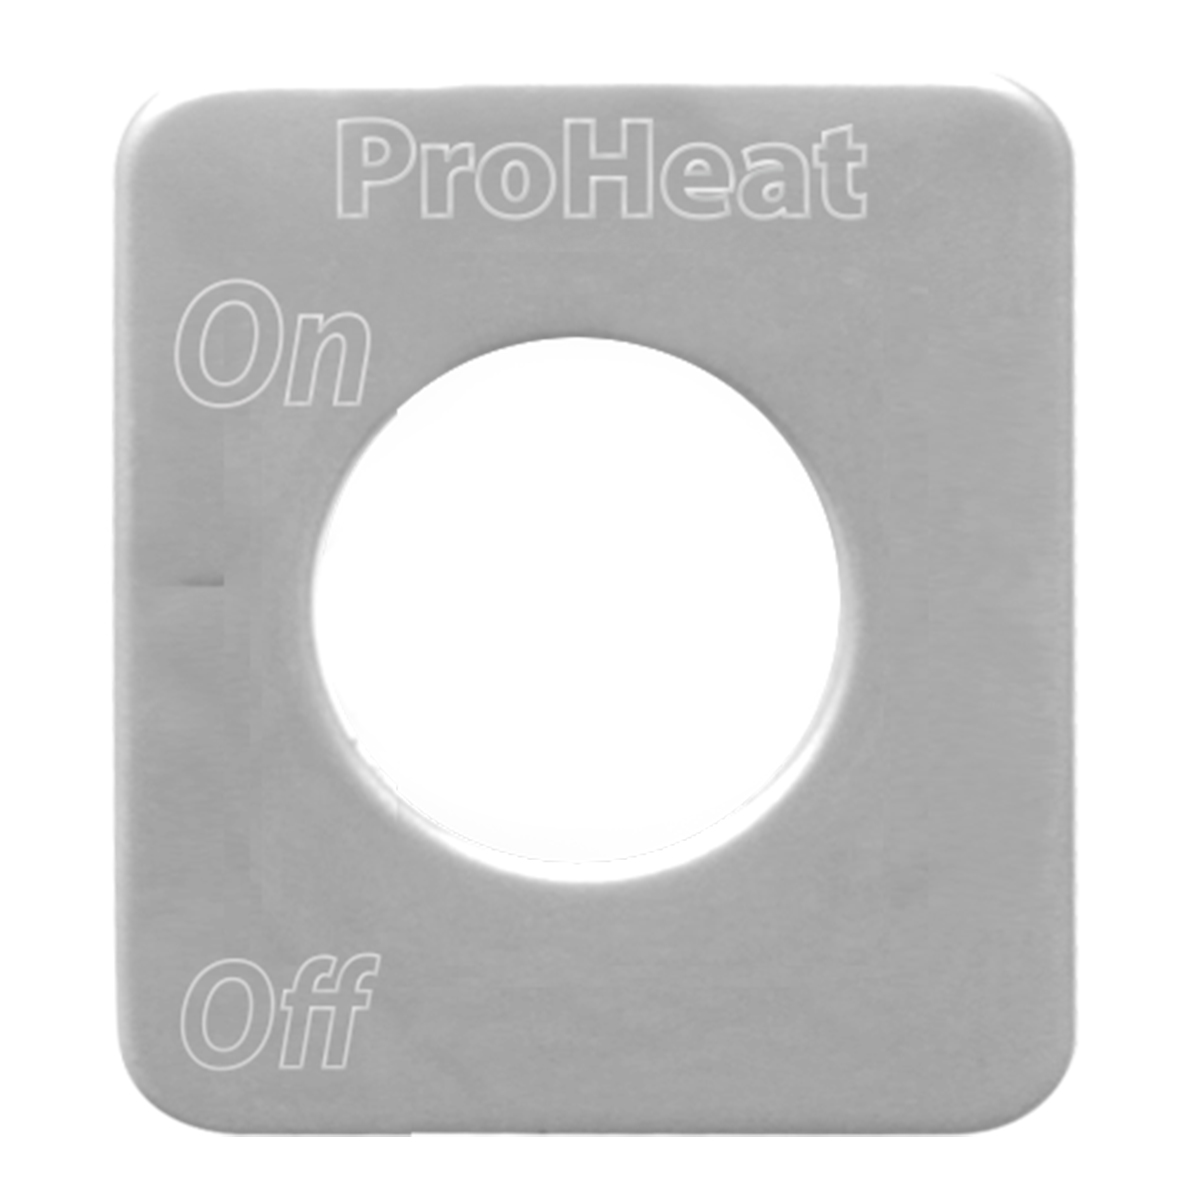 68589 Stainless Steel Proheat Engine Heater Switch Plate for KW